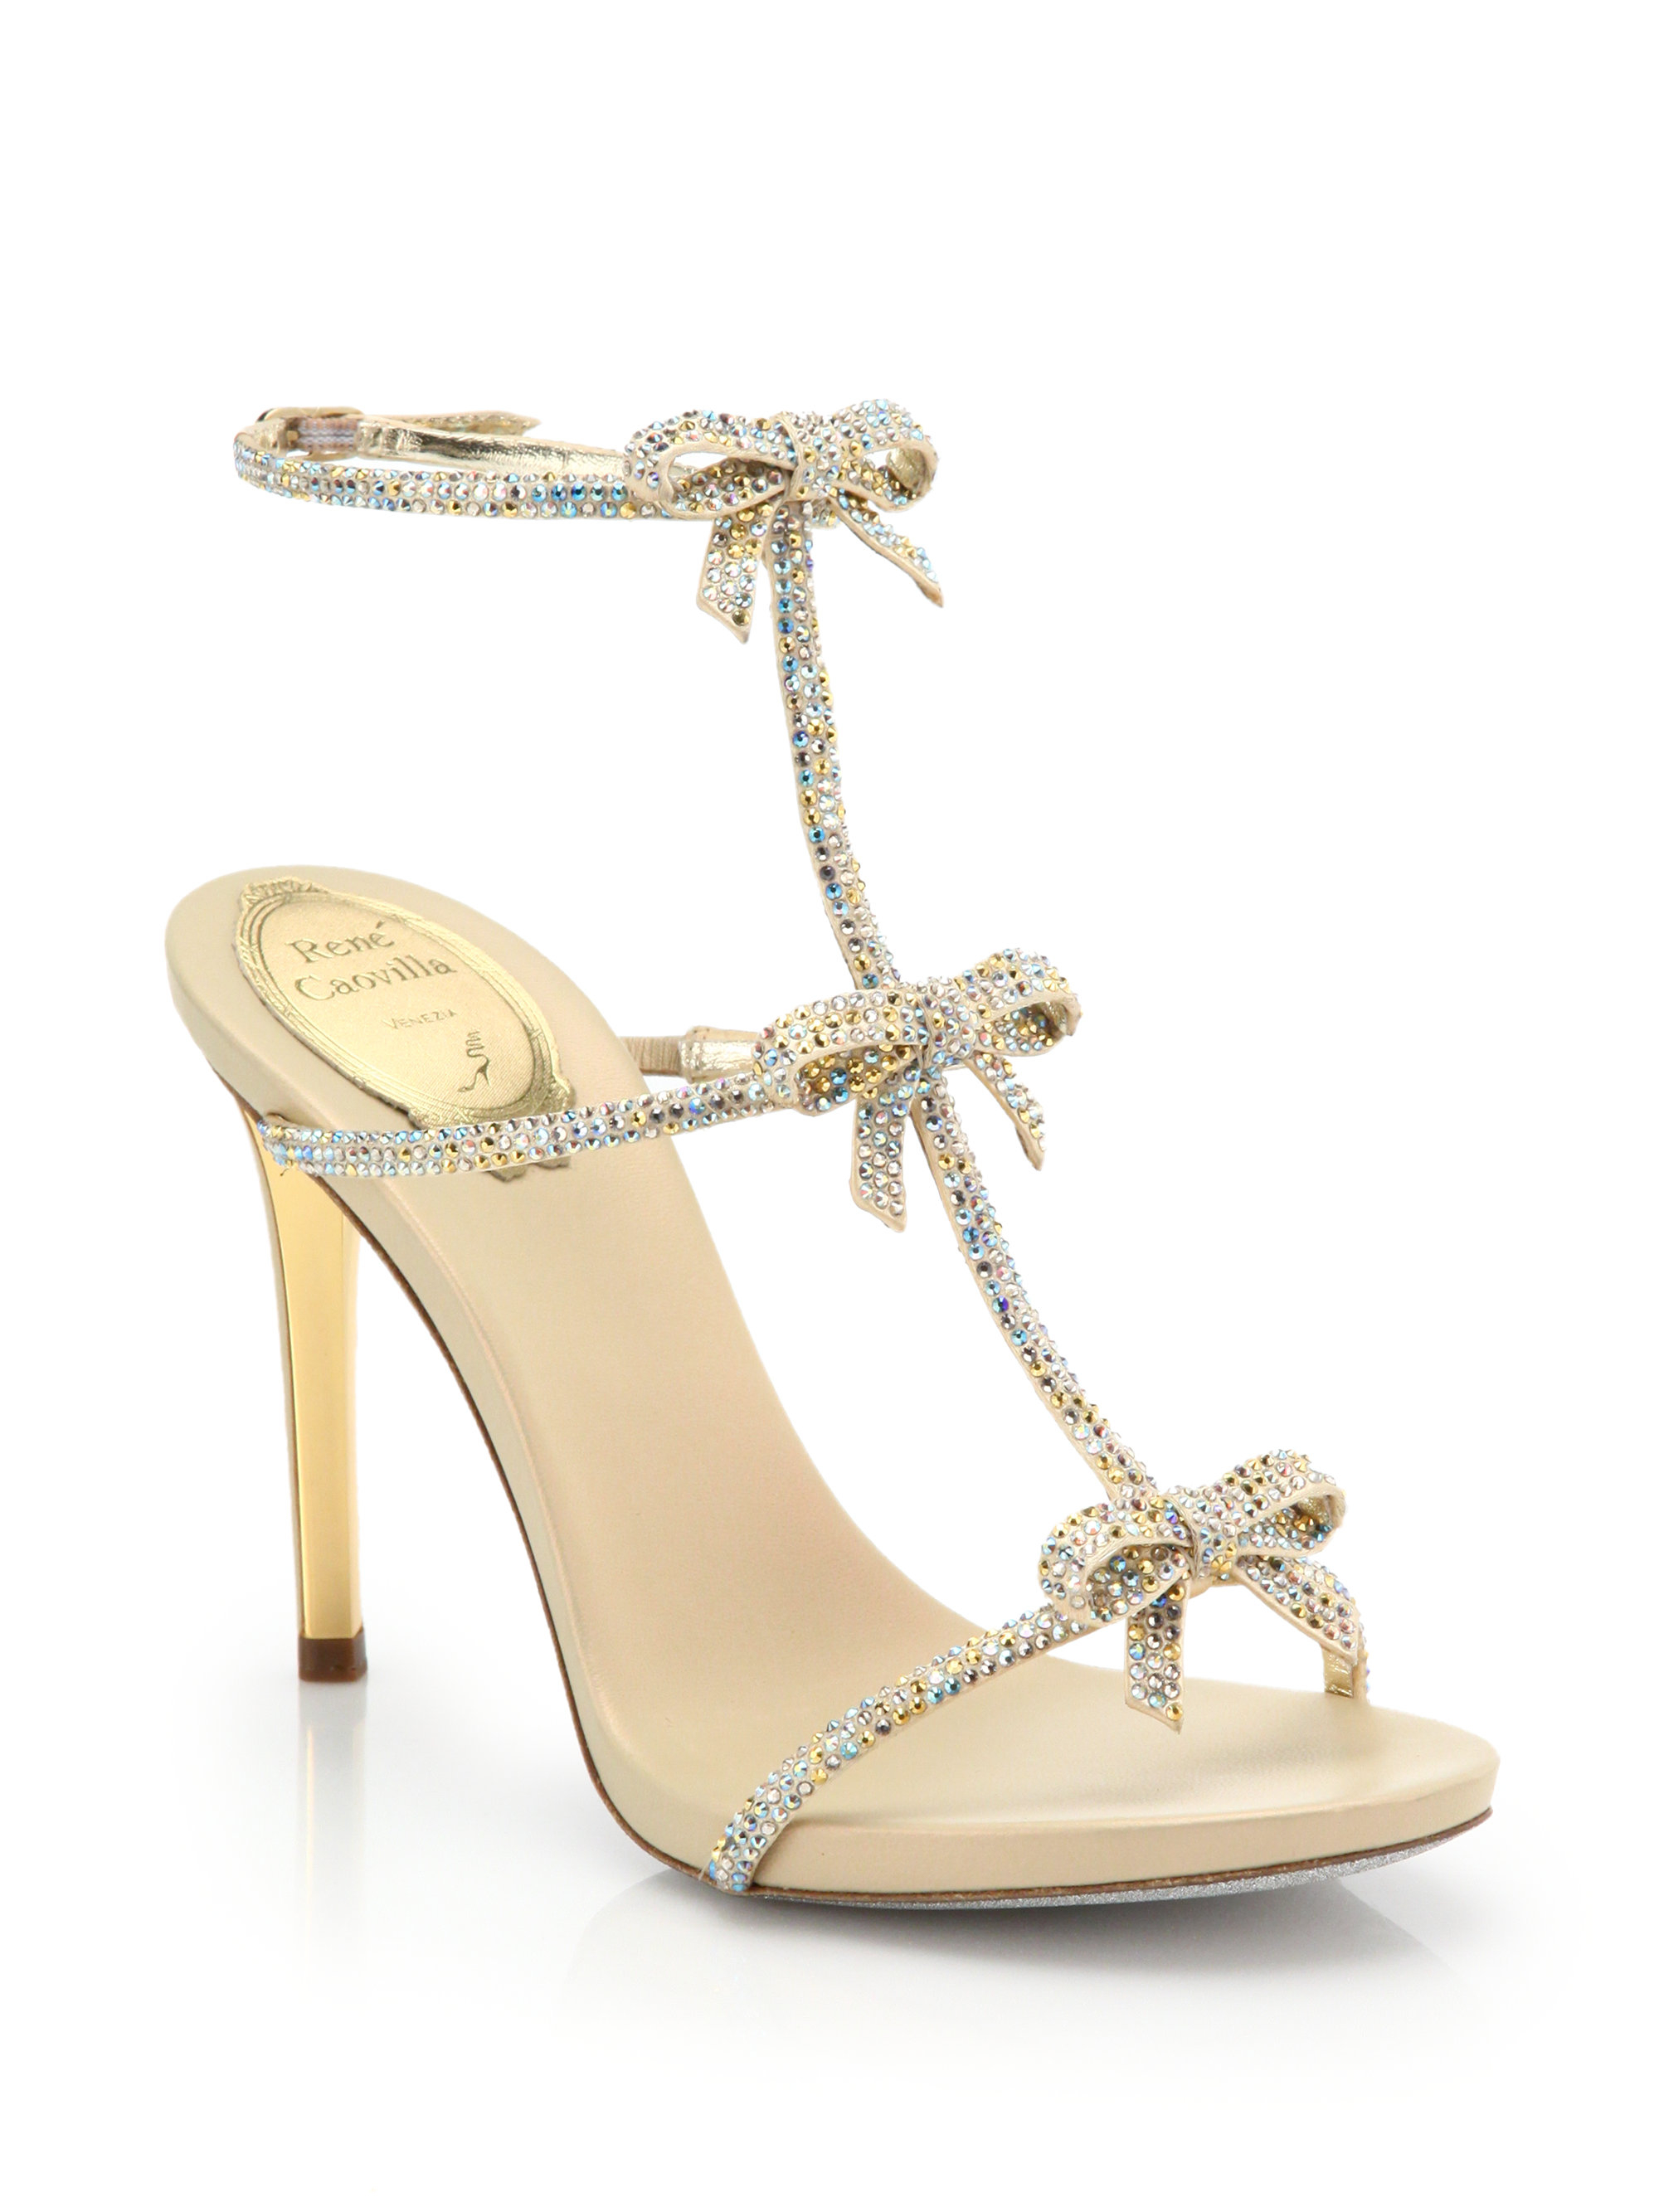 René Caovilla strass embellished sandals cheap best prices clearance outlet store enjoy for sale clearance from china sale comfortable r7UgDlq5